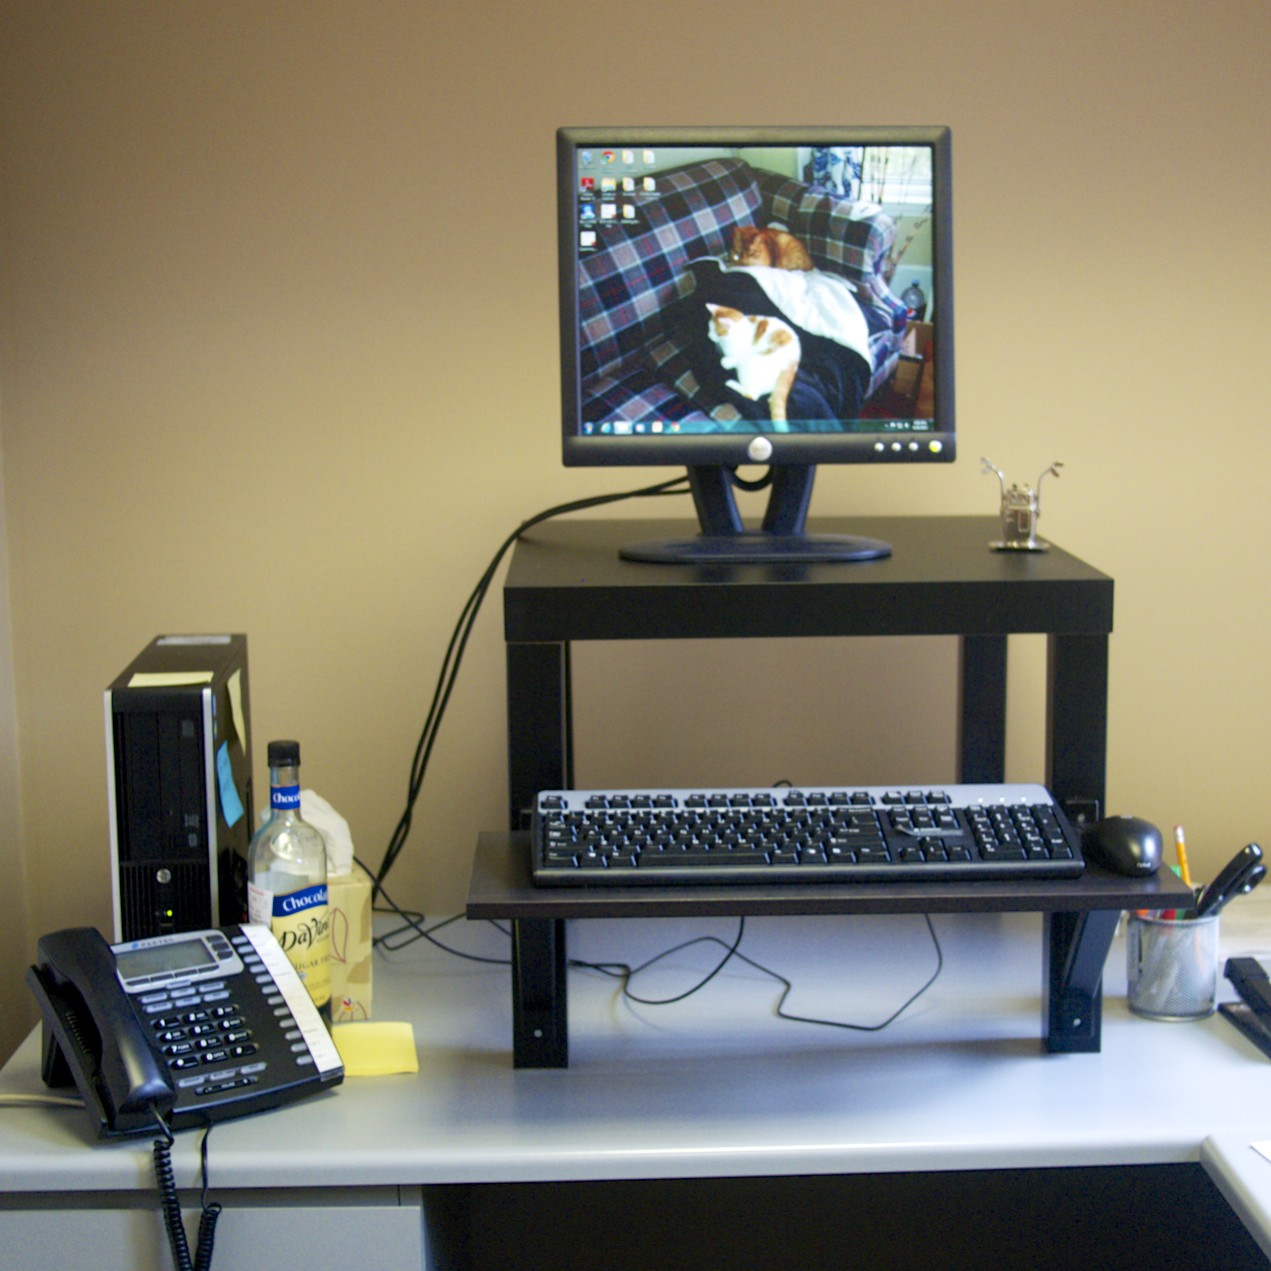 Diy ikea standing desk - Get Things Done While Standing 10 Diy Desk Designs To